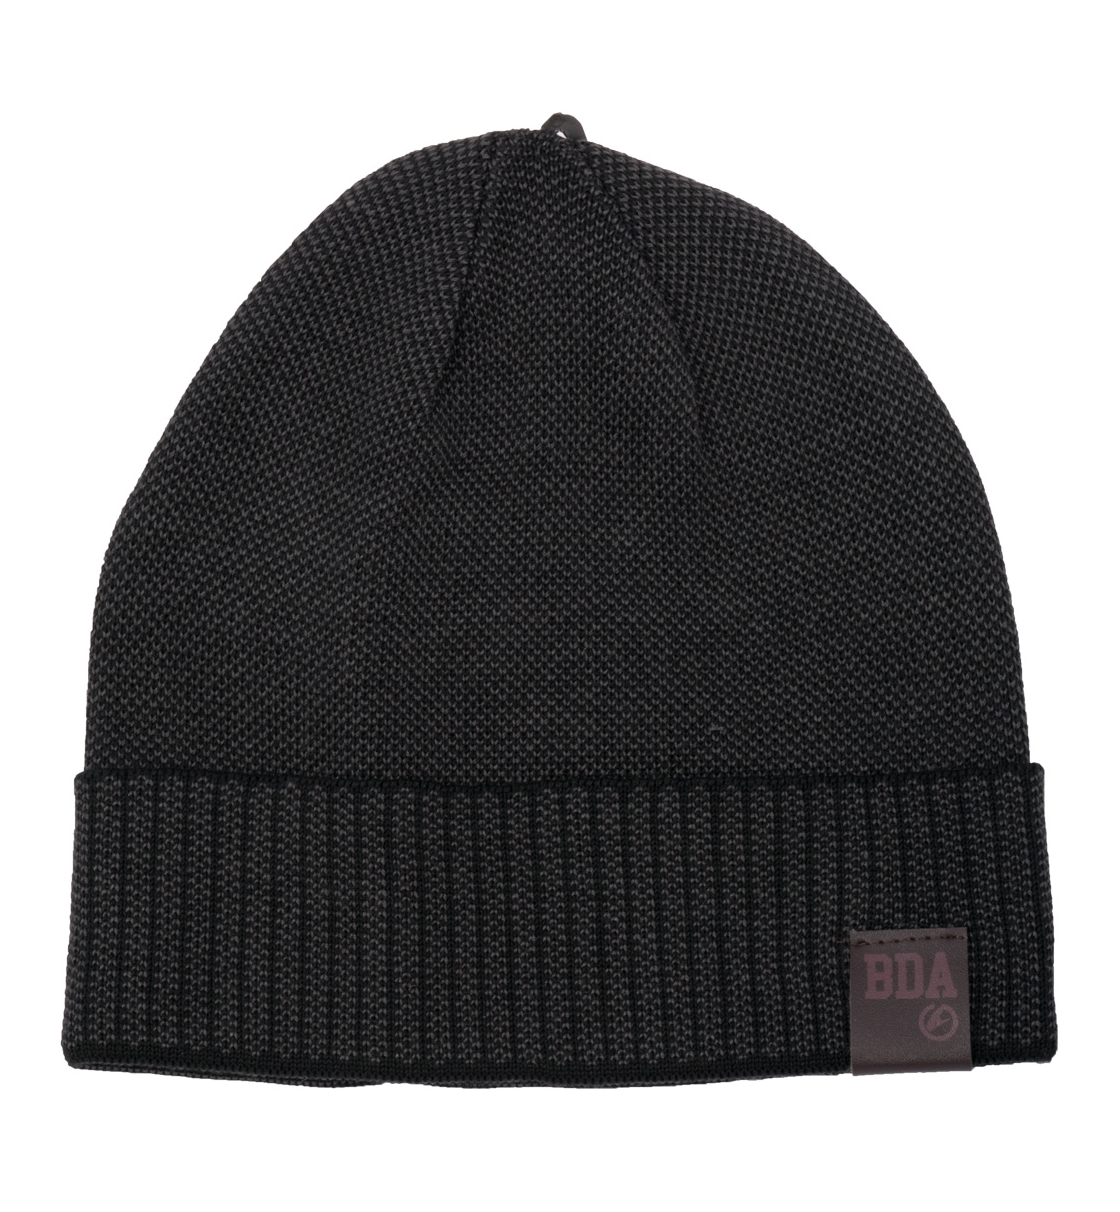 Body Action Σκούφος Jacquard Knit Beanie Hat 095704